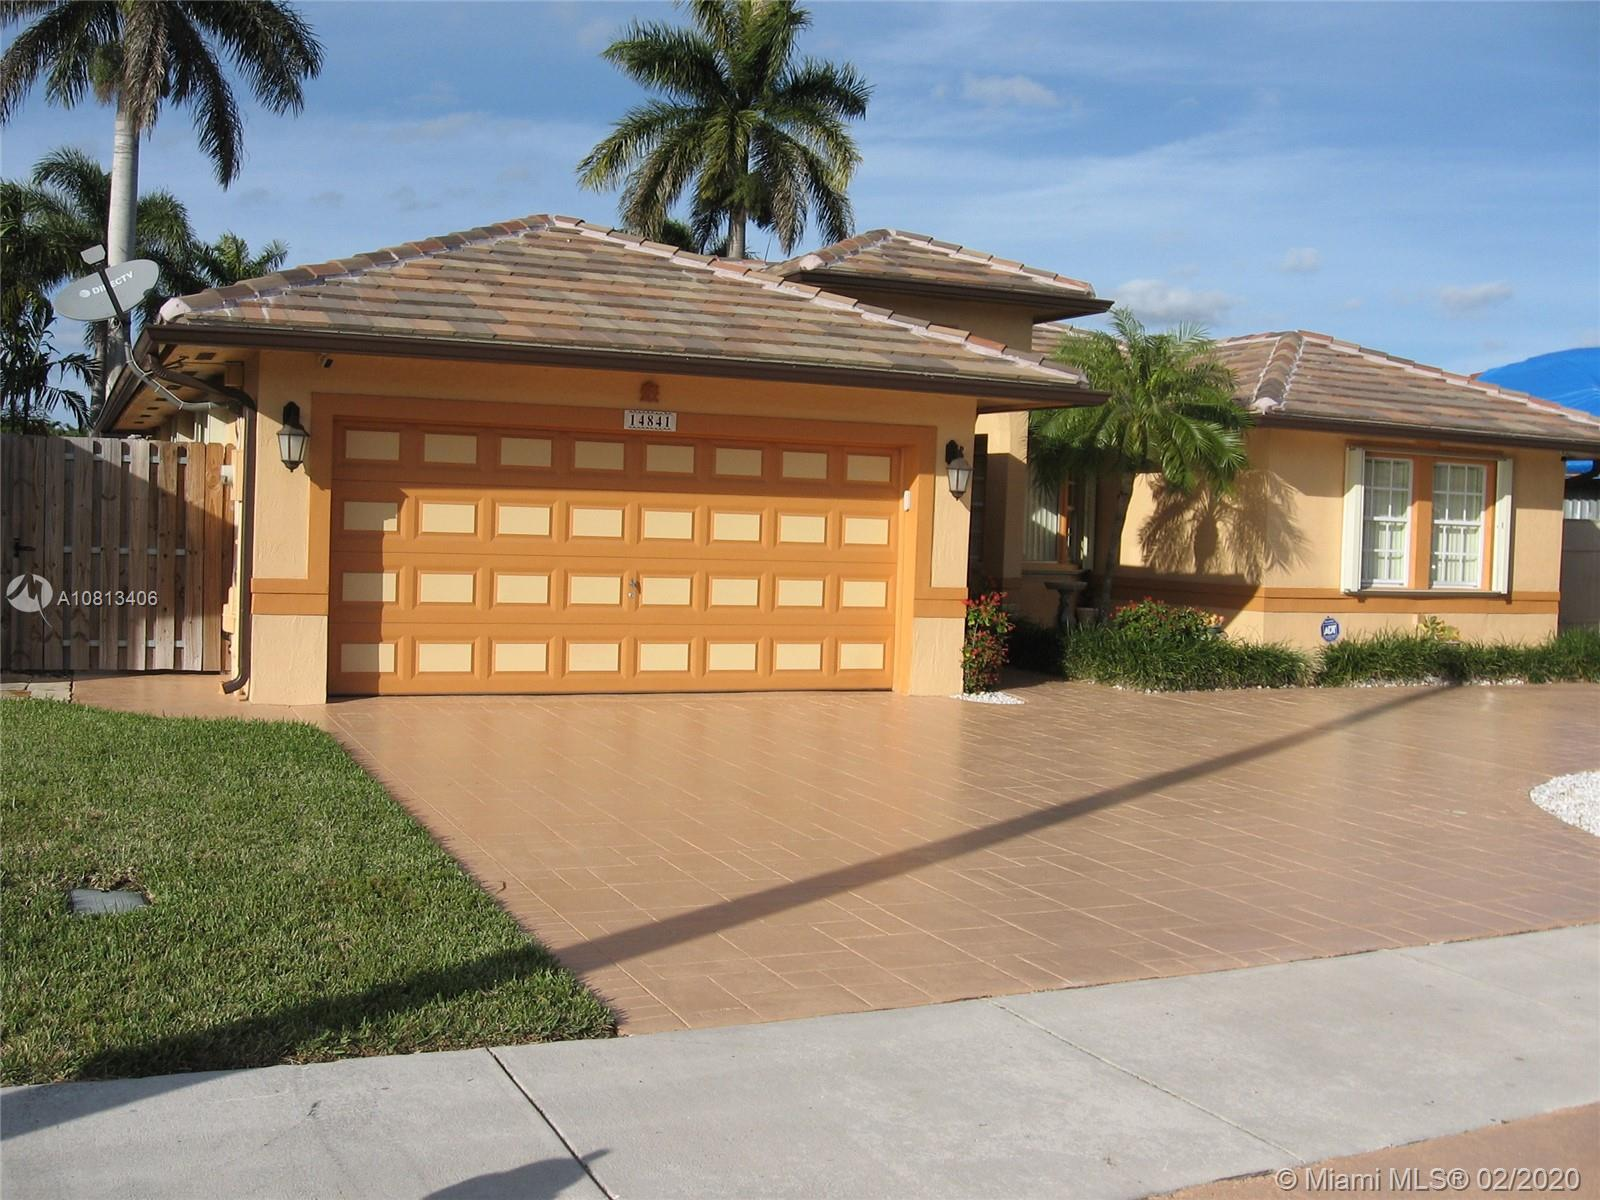 Spectacular 4 bedroom, 2 bath, two-car garage home located in a very desirable & quiet community in the SW Miami area. Close and accessible to highways, shopping centers, hospitals, etc. No HOA! Features photocell illumination throughout, high grade accordion shutters, full security camera  network ready, huge backyard with a 15x30 pool, beautifully designed full stamped concrete driveway, high ceilings, ceramic floors throughout, freshly painted. This home comes with an extra exceptional value with its 6 month old premium tile roof, less than a year old RHEEM full A/C system. BOTH items have a 10-year warranty. Great opportunity to own an impeccable home! Competitively priced! WON'T LAST!